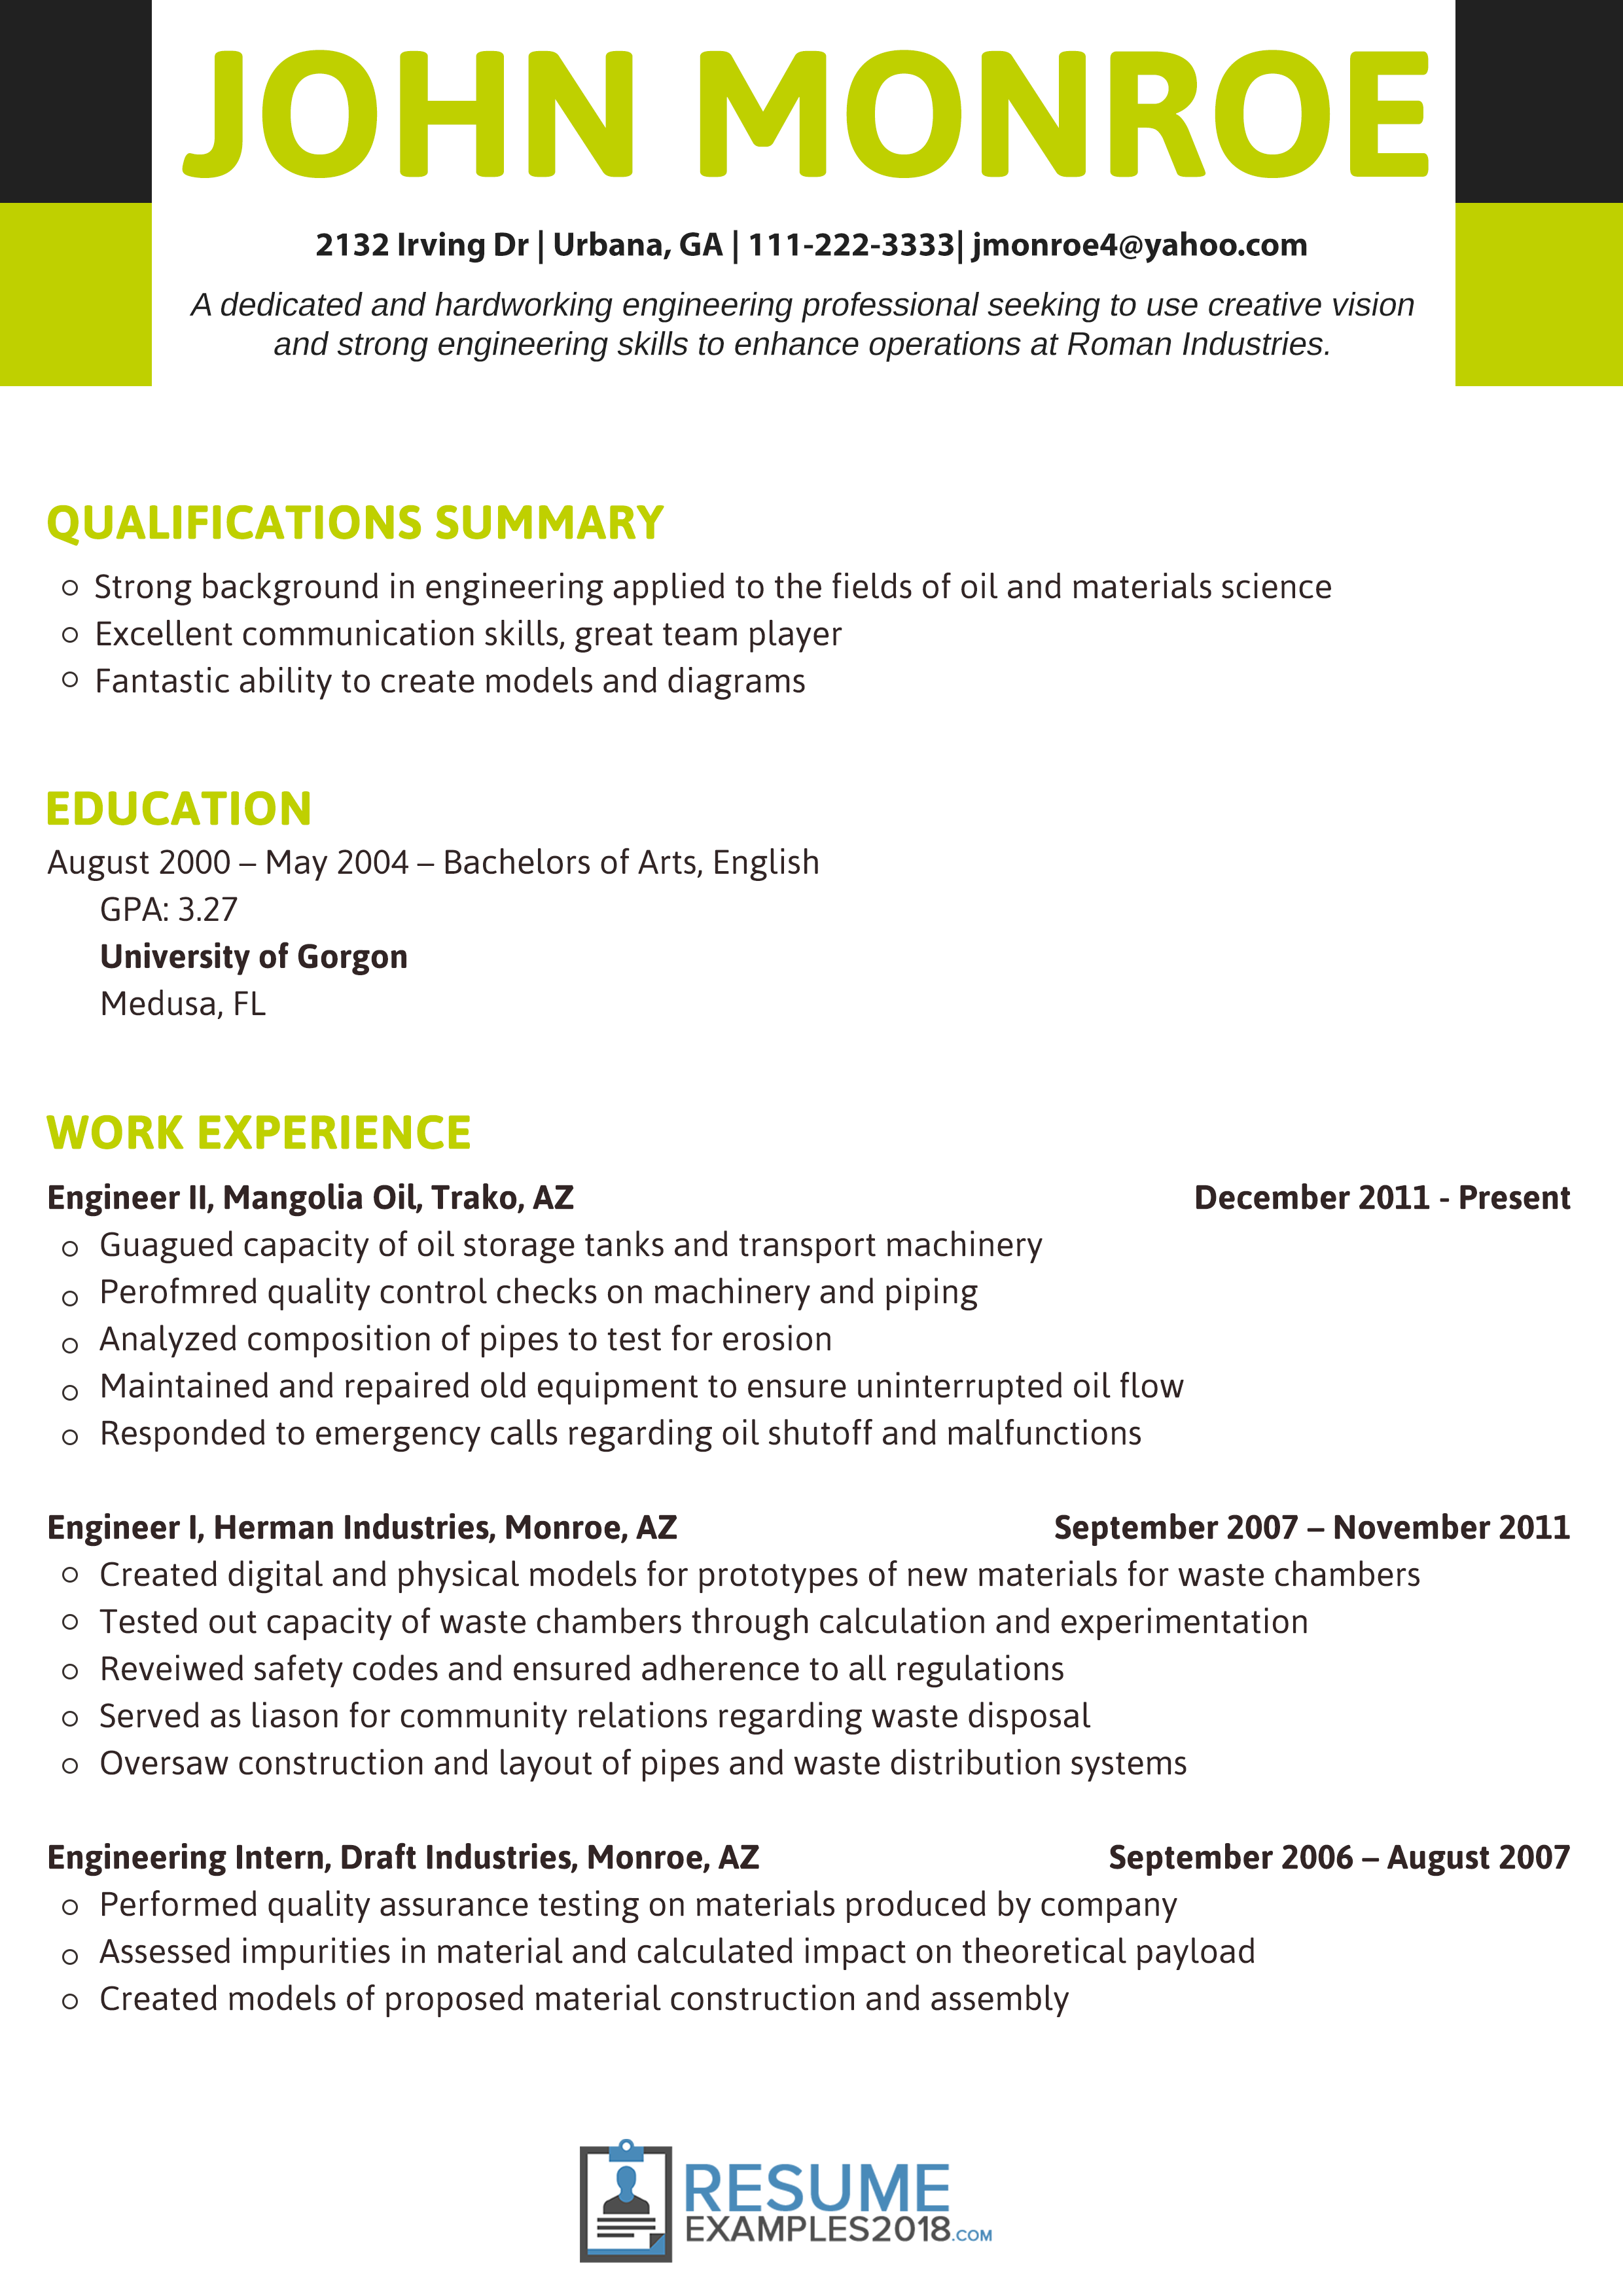 hight resolution of resume examples 2018 engineering engineering examples resume resumeexamples